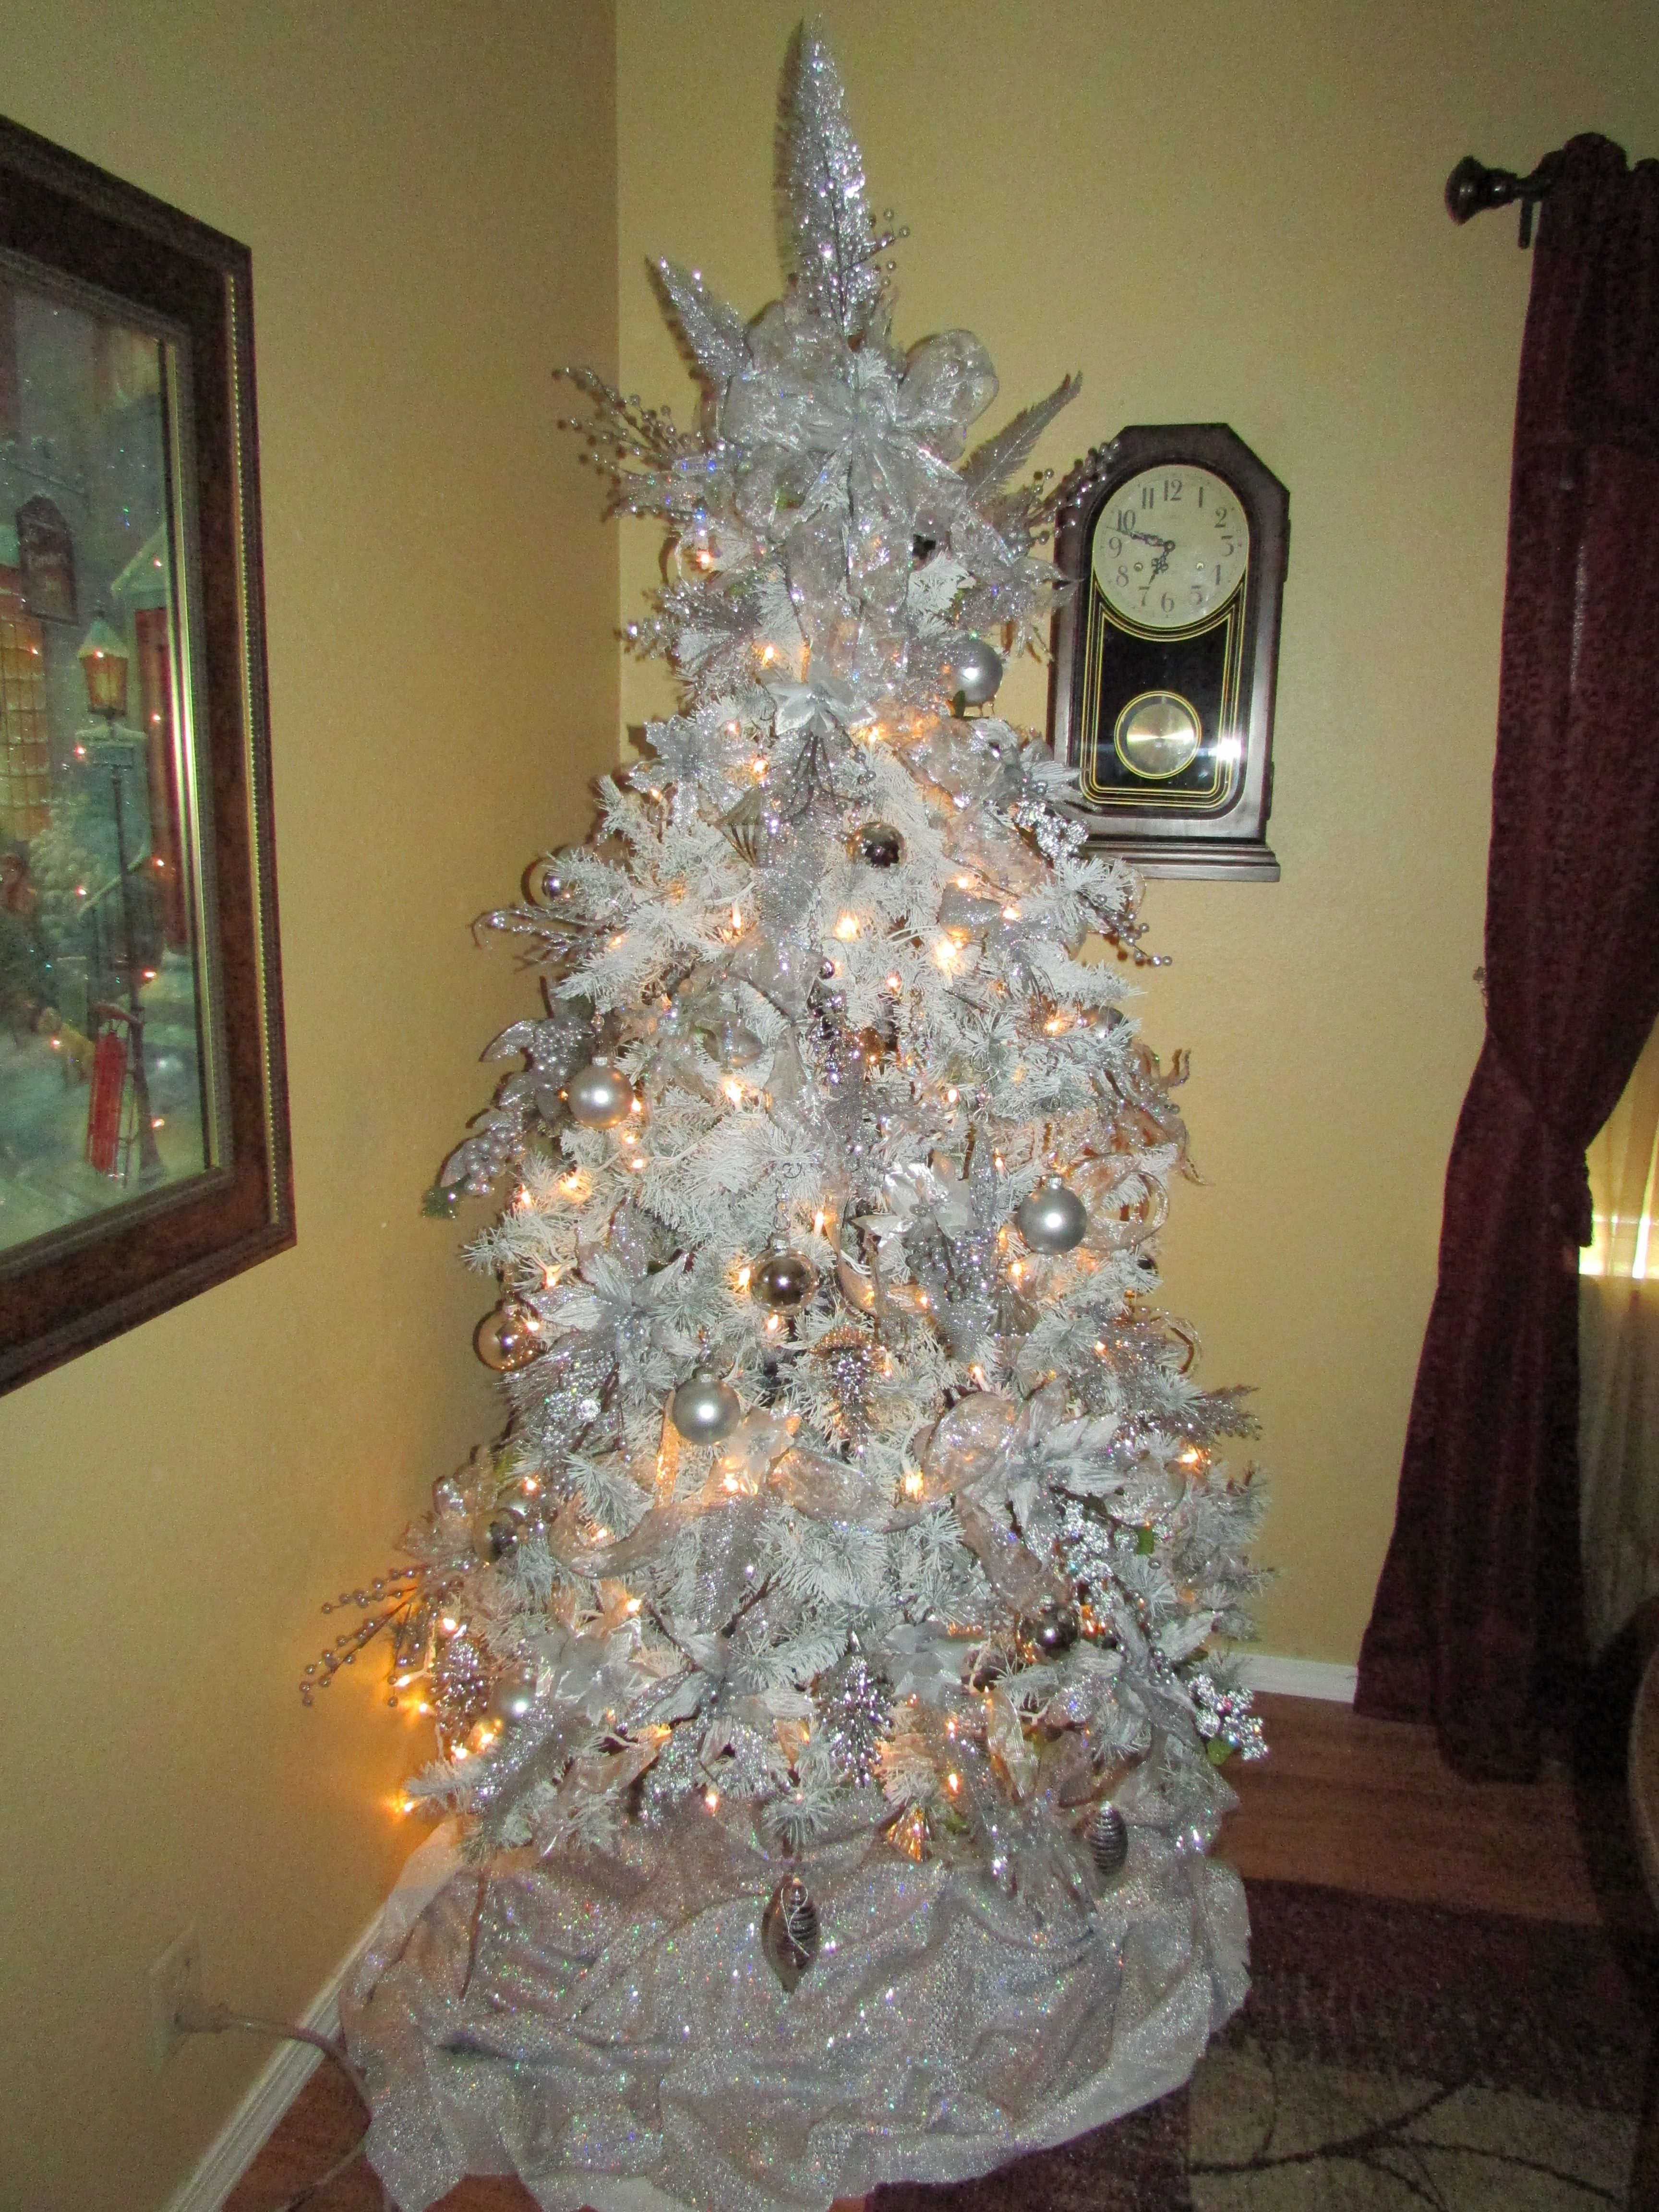 Flocked a green artificial Christmas tree using white